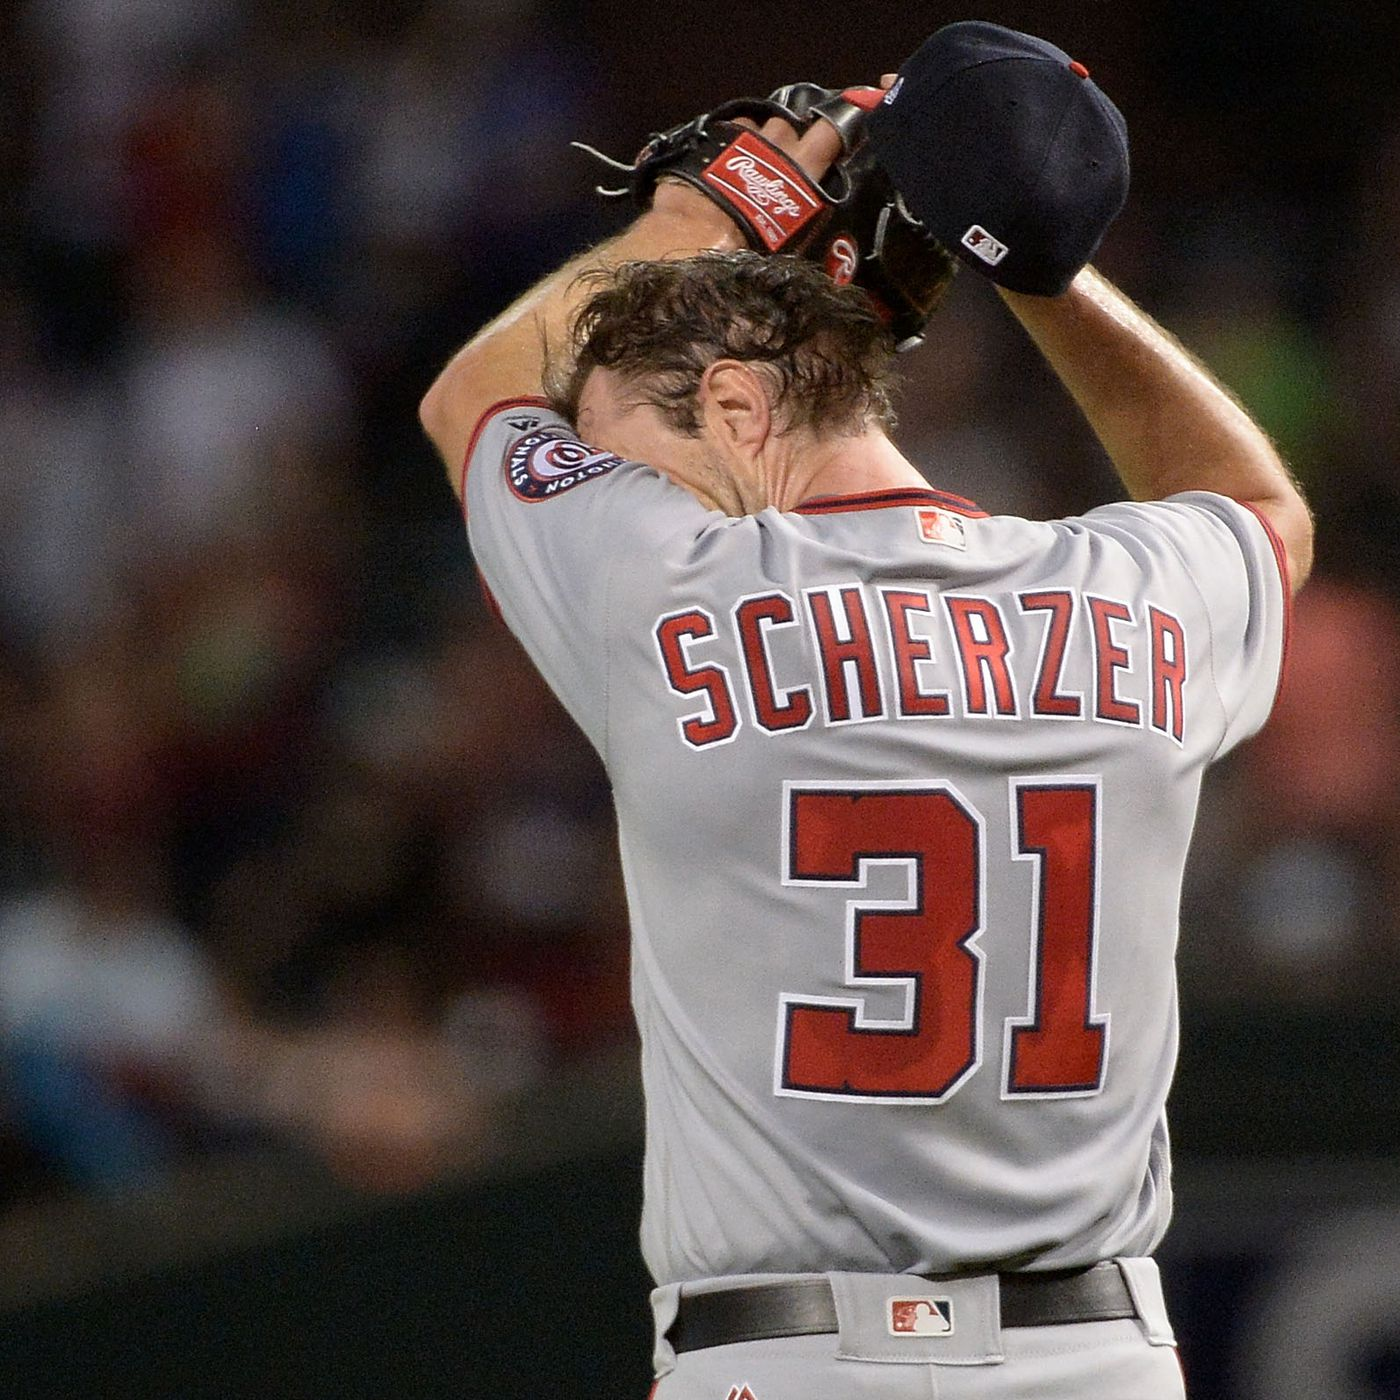 Max Scherzer gets punched in the face by back-to-back-to-back homers